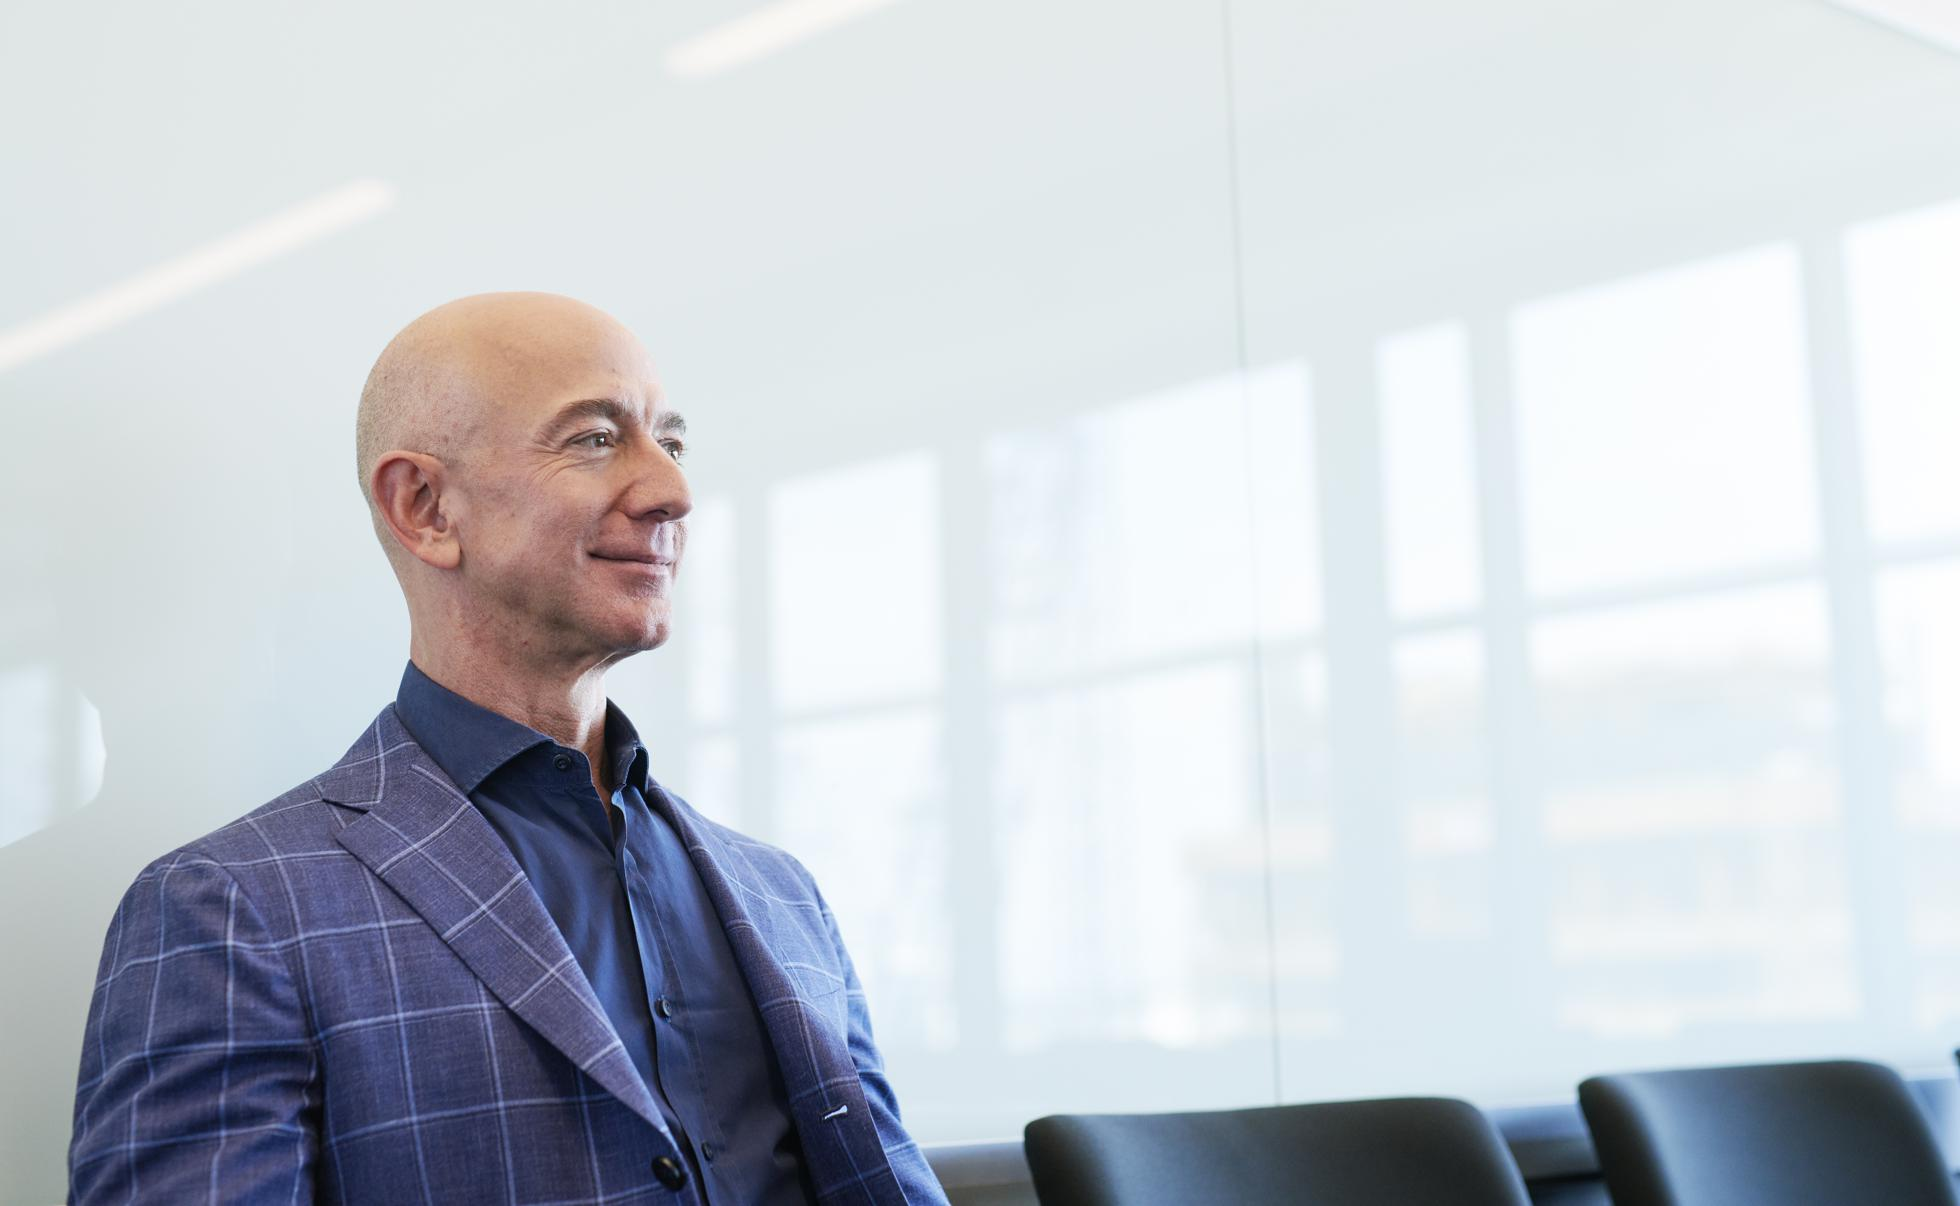 Amazon founder Jeff Bezos is stepping down as CEO after 27 years at the helm and transitioning to executive chairman.